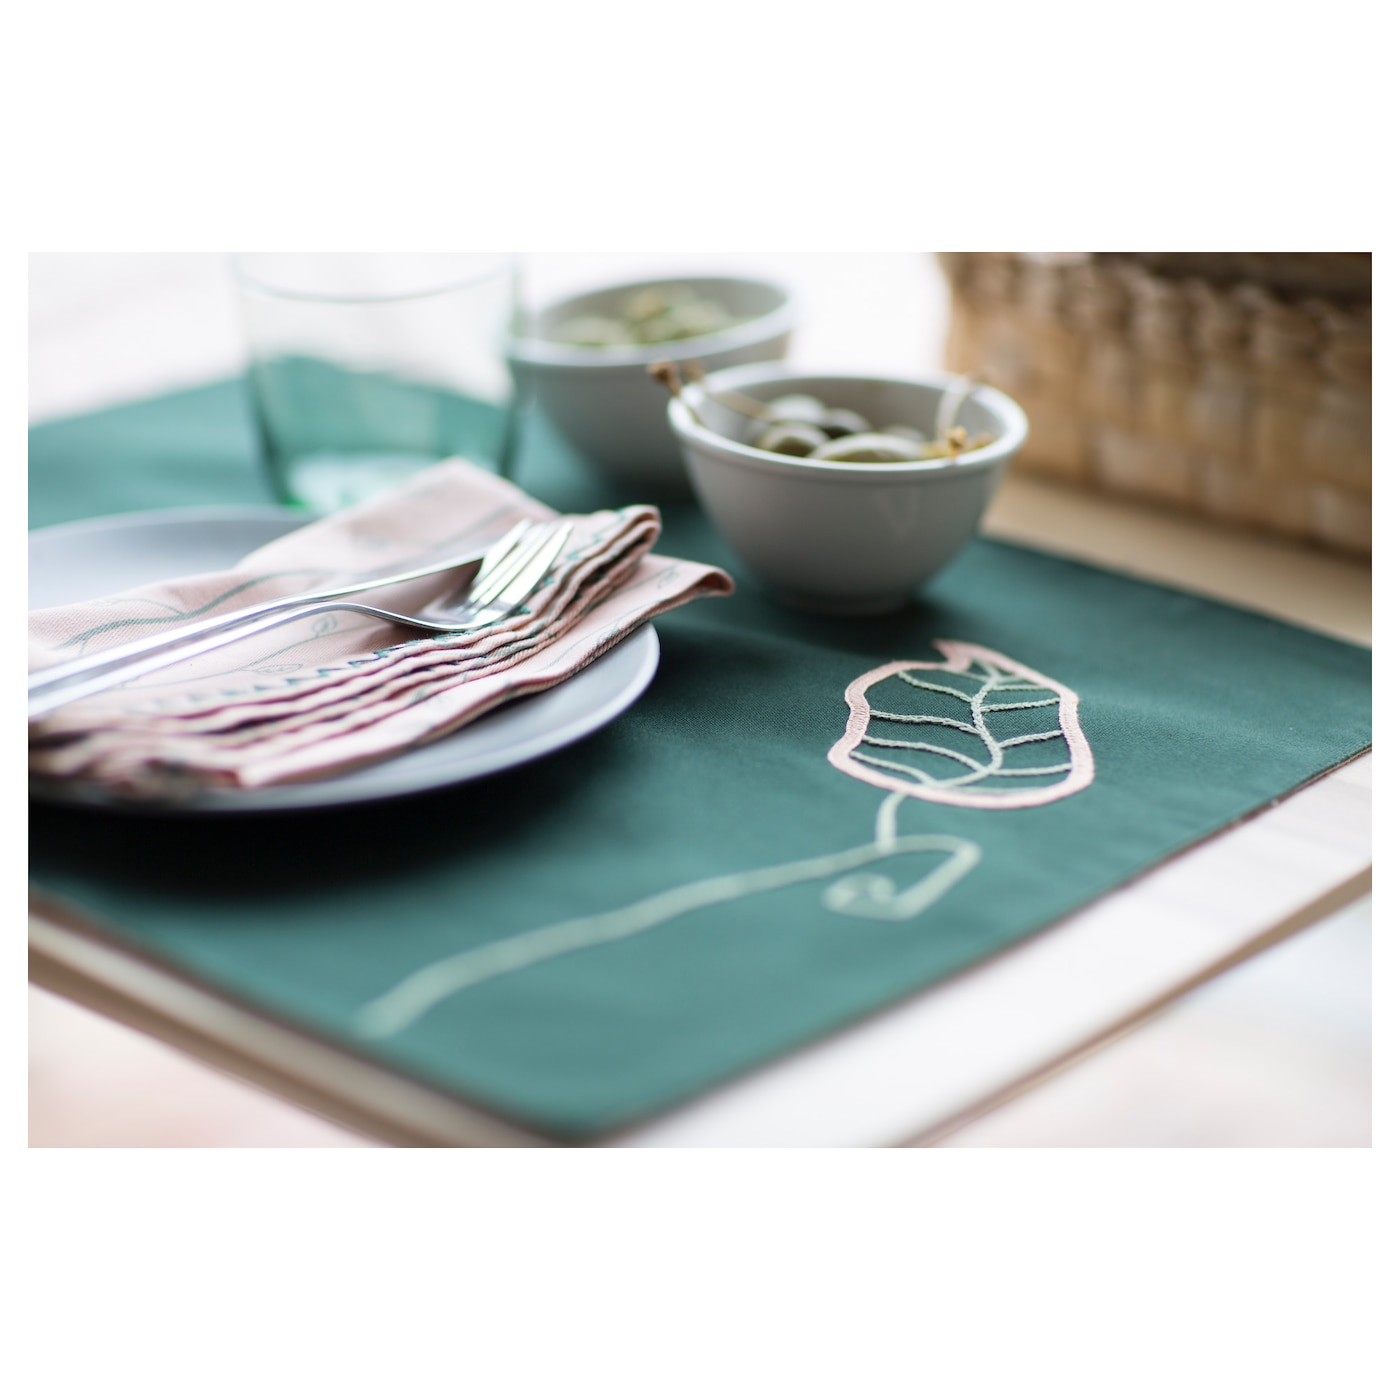 IKEA HEMGJORD place mat Protects the table top surface and reduces noise from plates and cutlery.